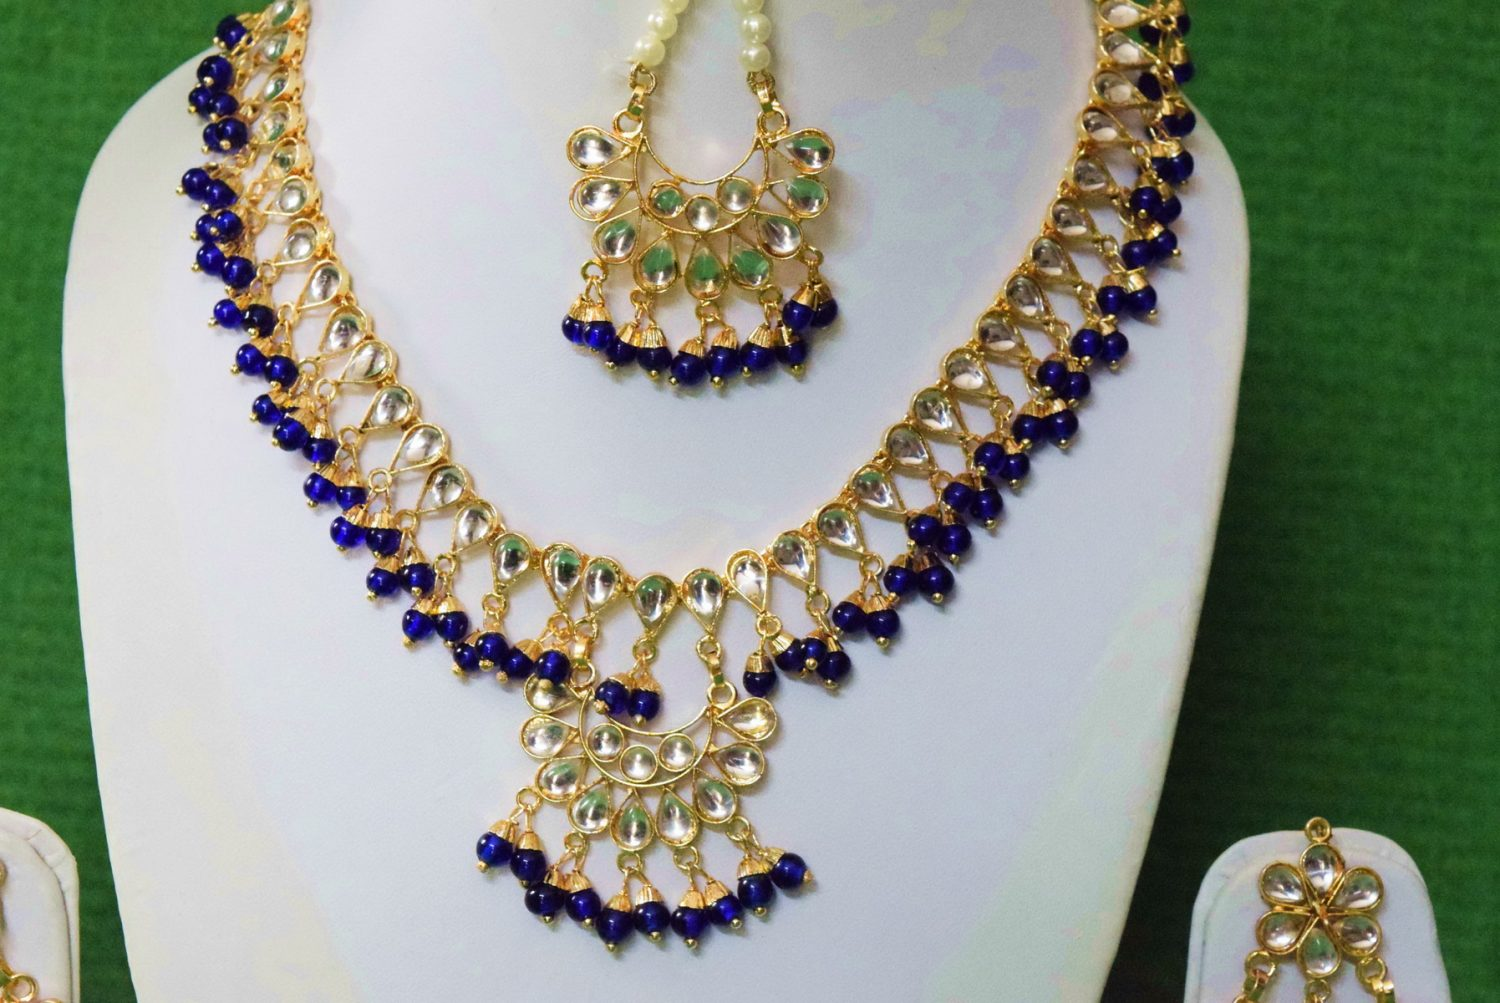 Blue Kundan Set of Tikka Earrings Necklace J0374 2